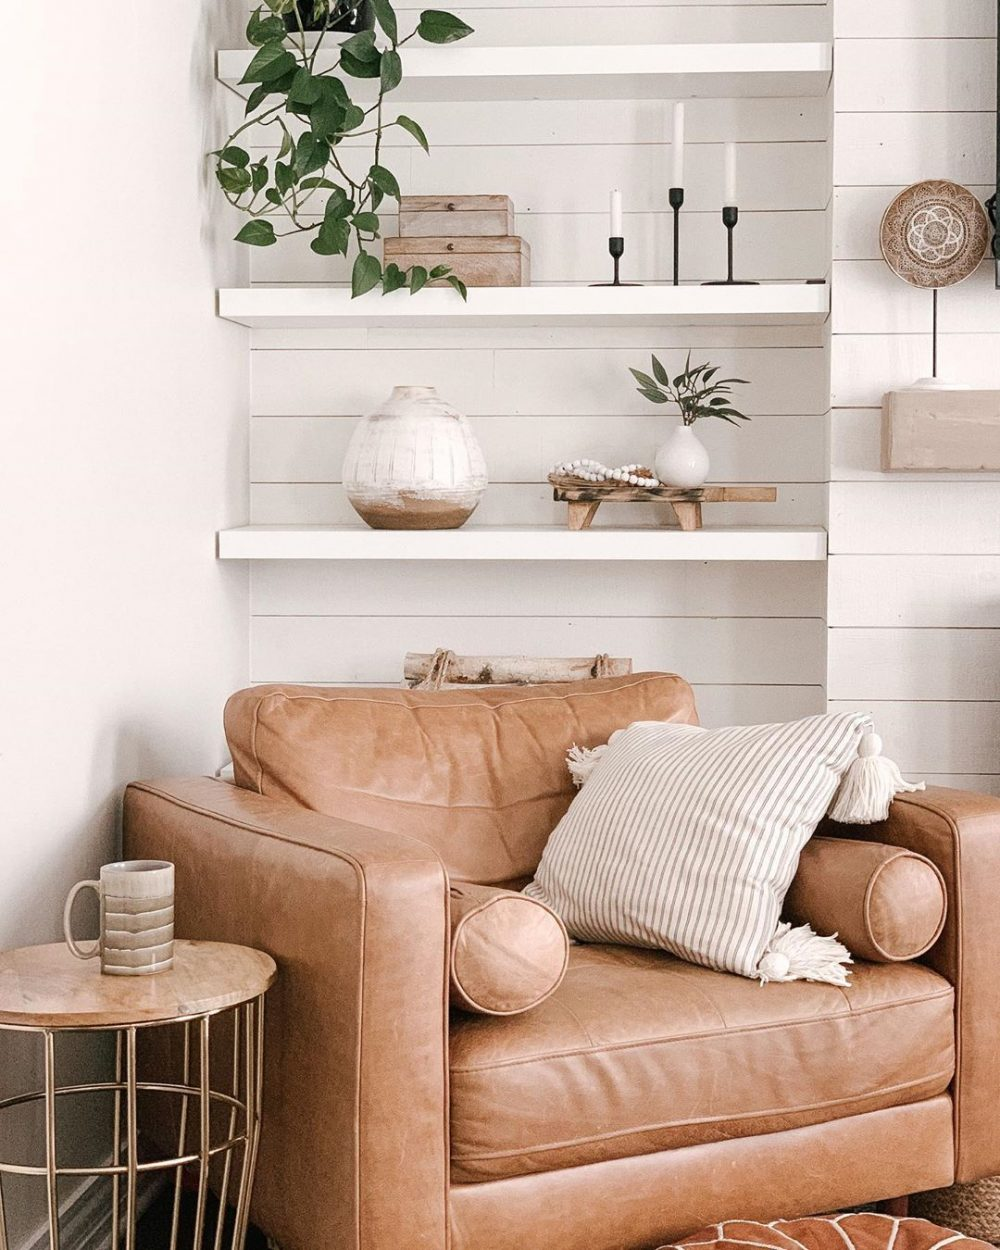 Fresh White and Tan Decor